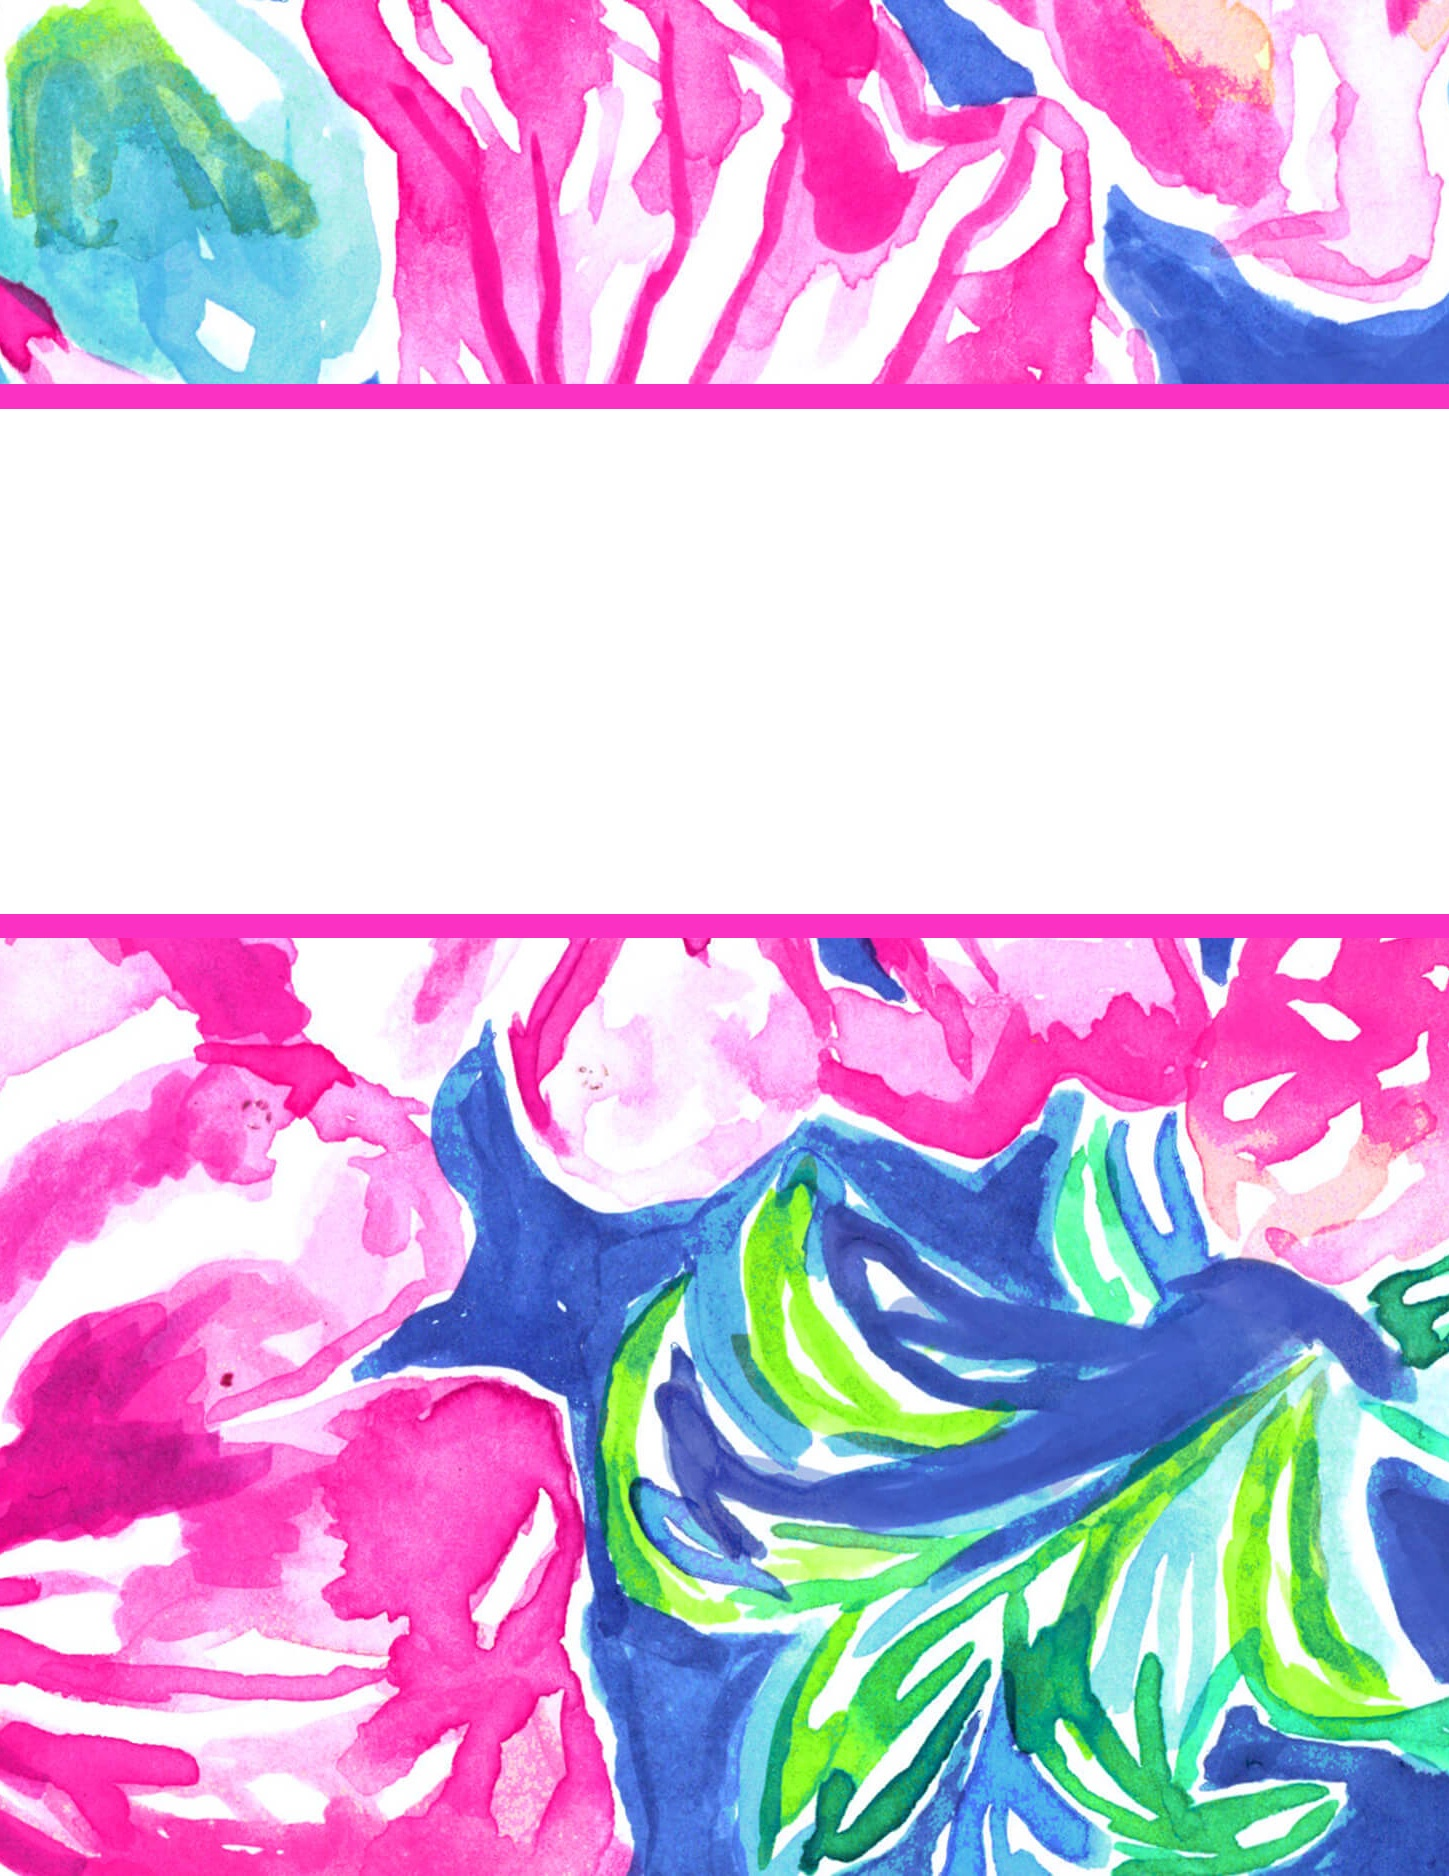 Free Printable Preppy Lilly Pulitzer Binder Covers - Free Printable School Binder Covers